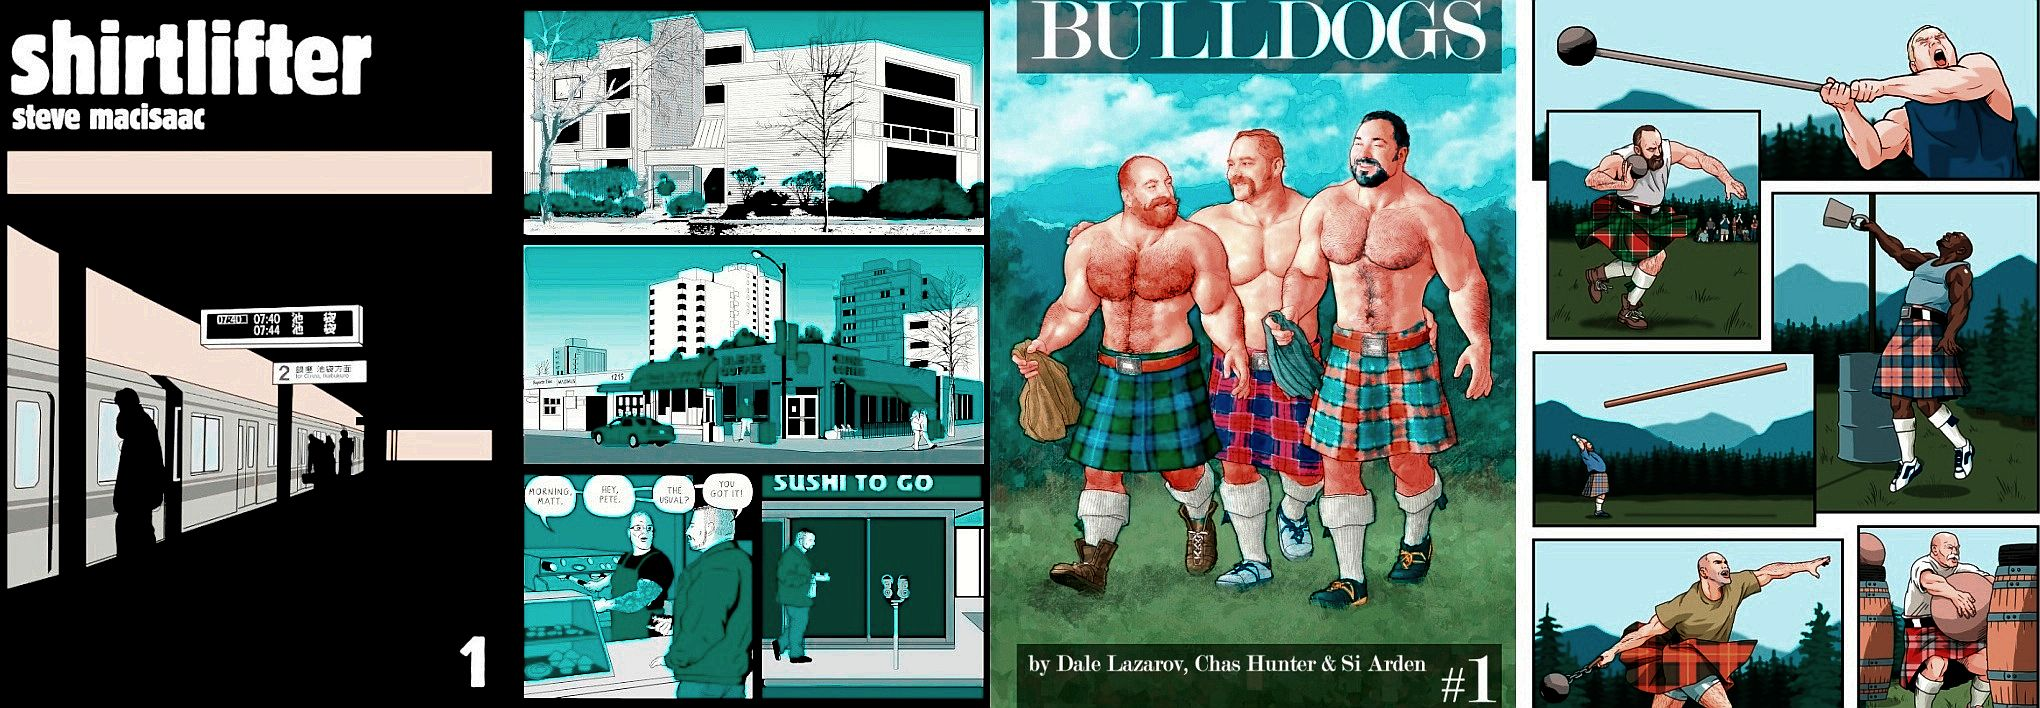 Cover and interior art from Shirtlifter by Steve MacIsaac / Cover and  interior art from Bulldogs